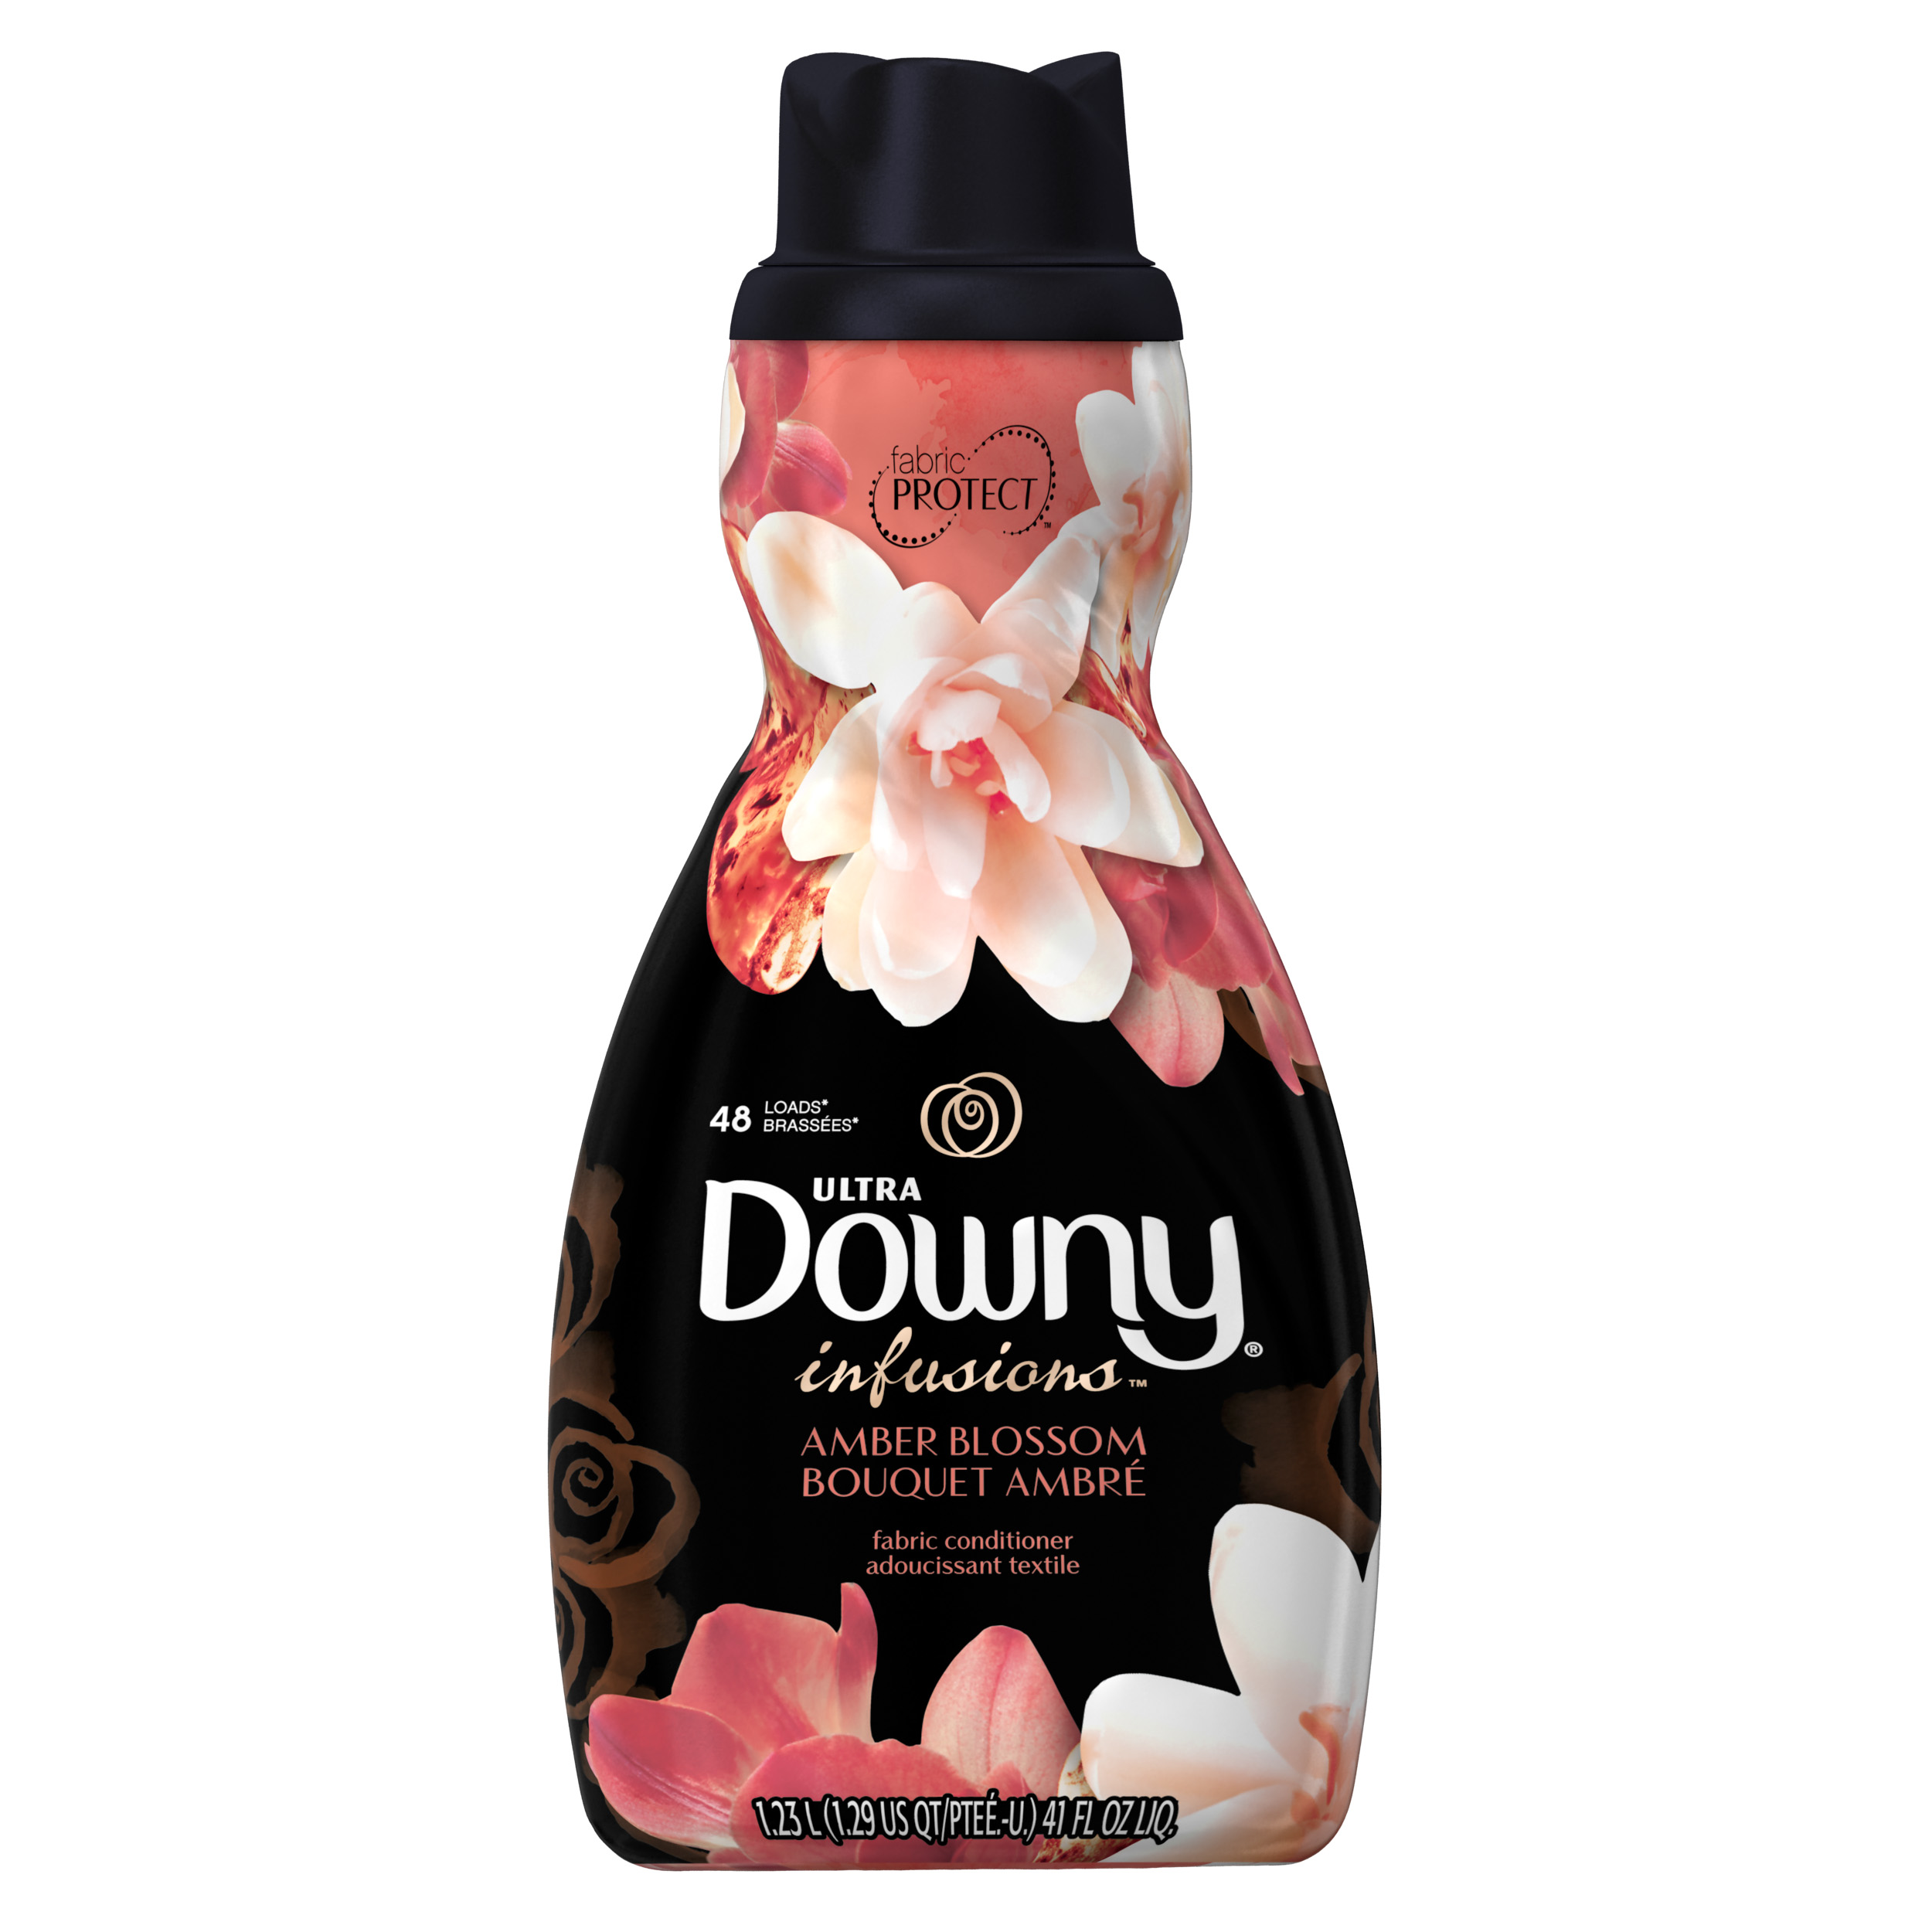 Downy Ultra Infusions Liquid Fabric Conditioner (Fabric Softener), Amber Blossom, 48 Loads, 41 fl oz